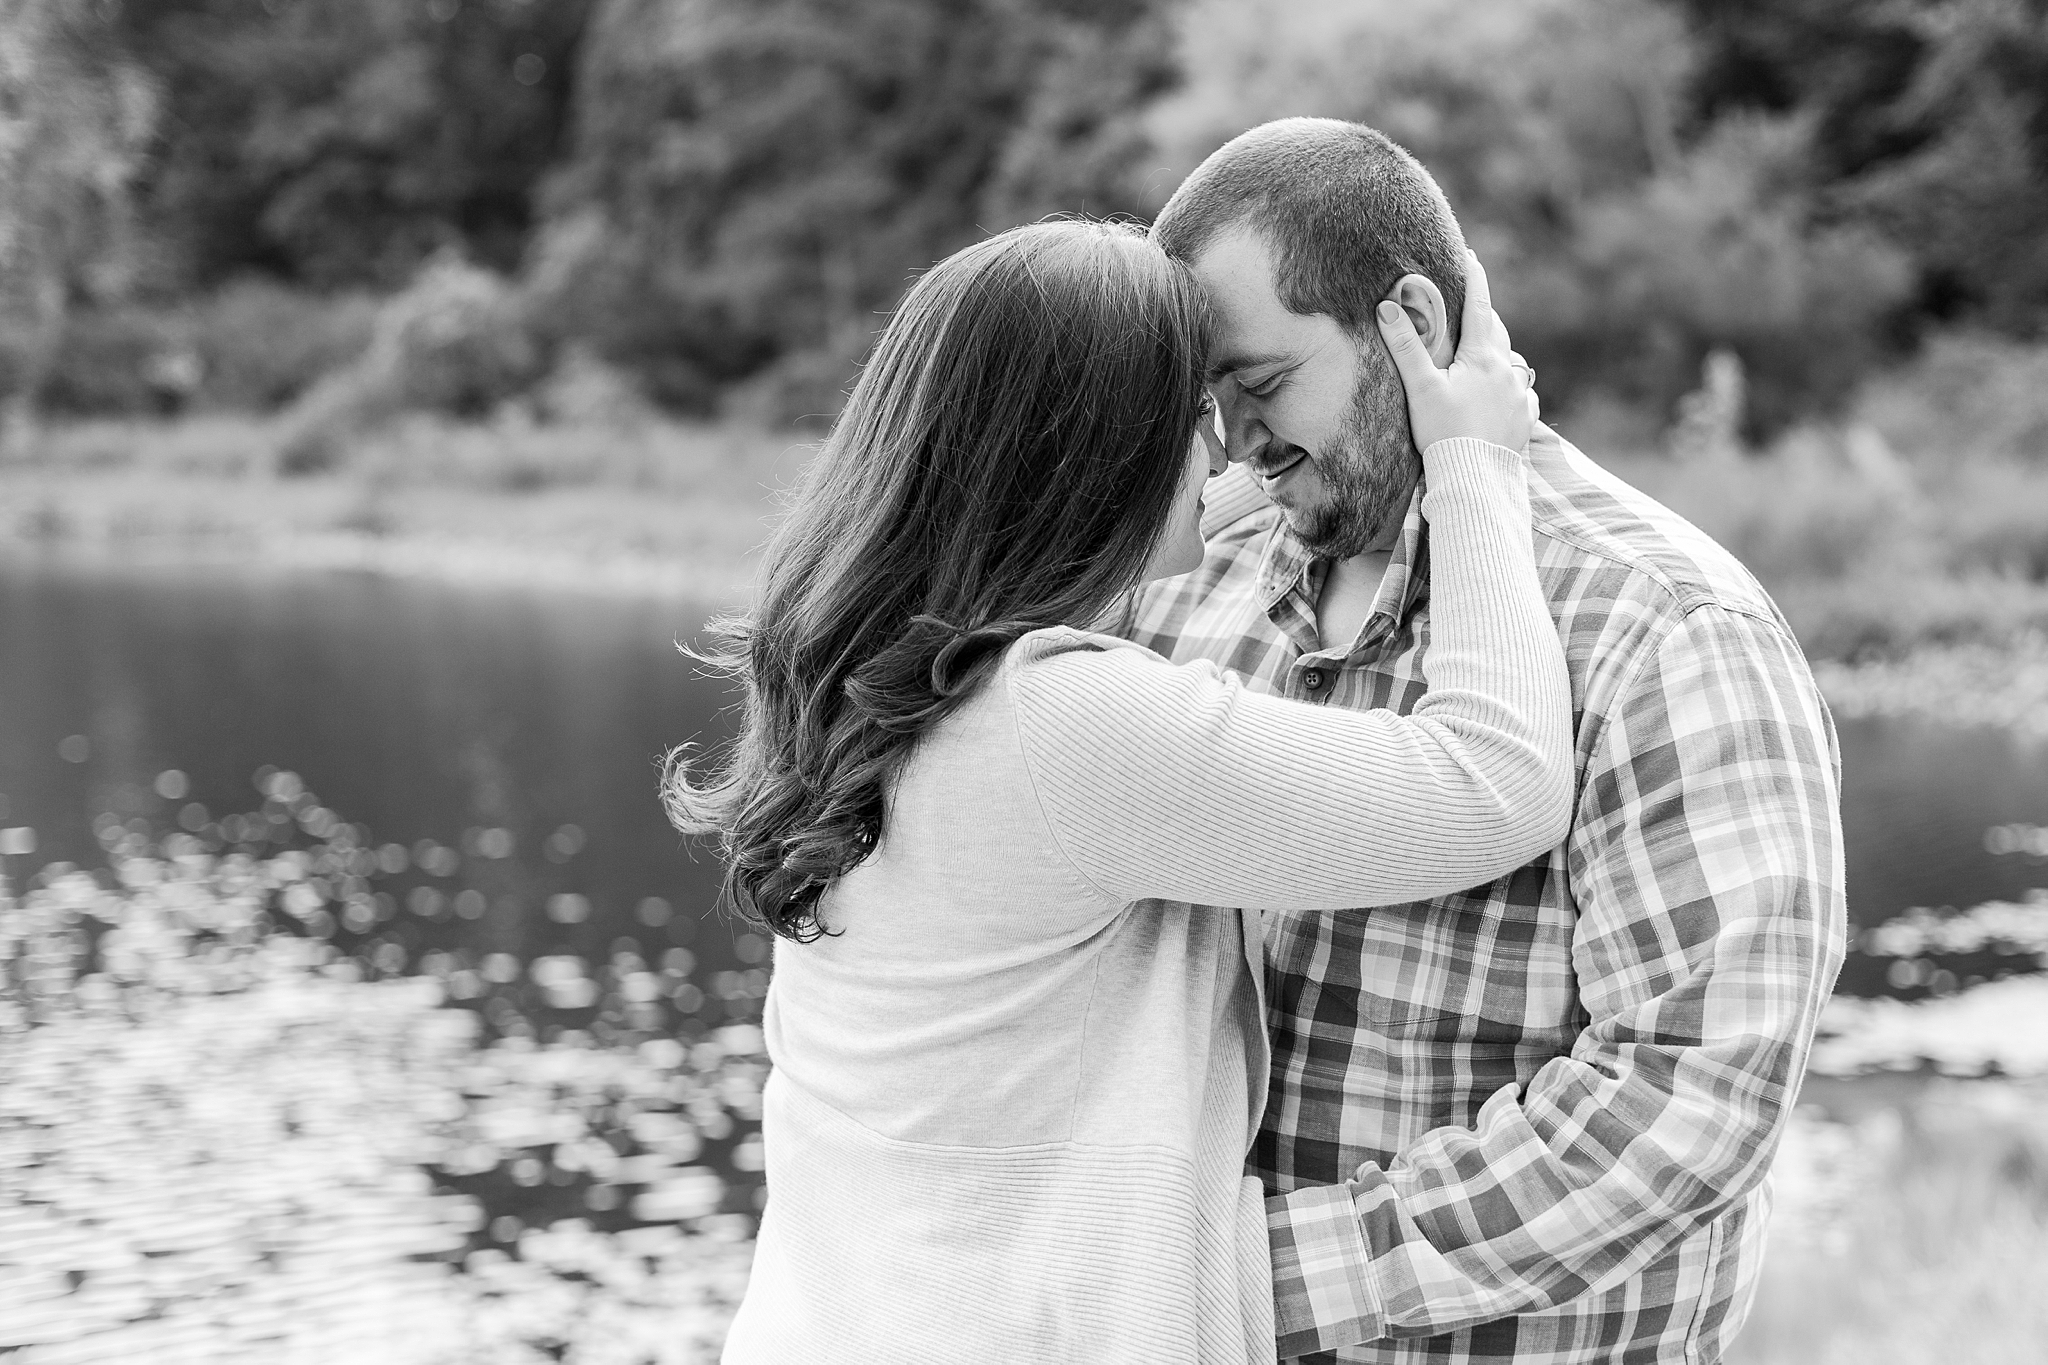 classic-vineyard-engagement-photography-in-lansing-mi-by-courtney-carolyn-photography_0016.jpg